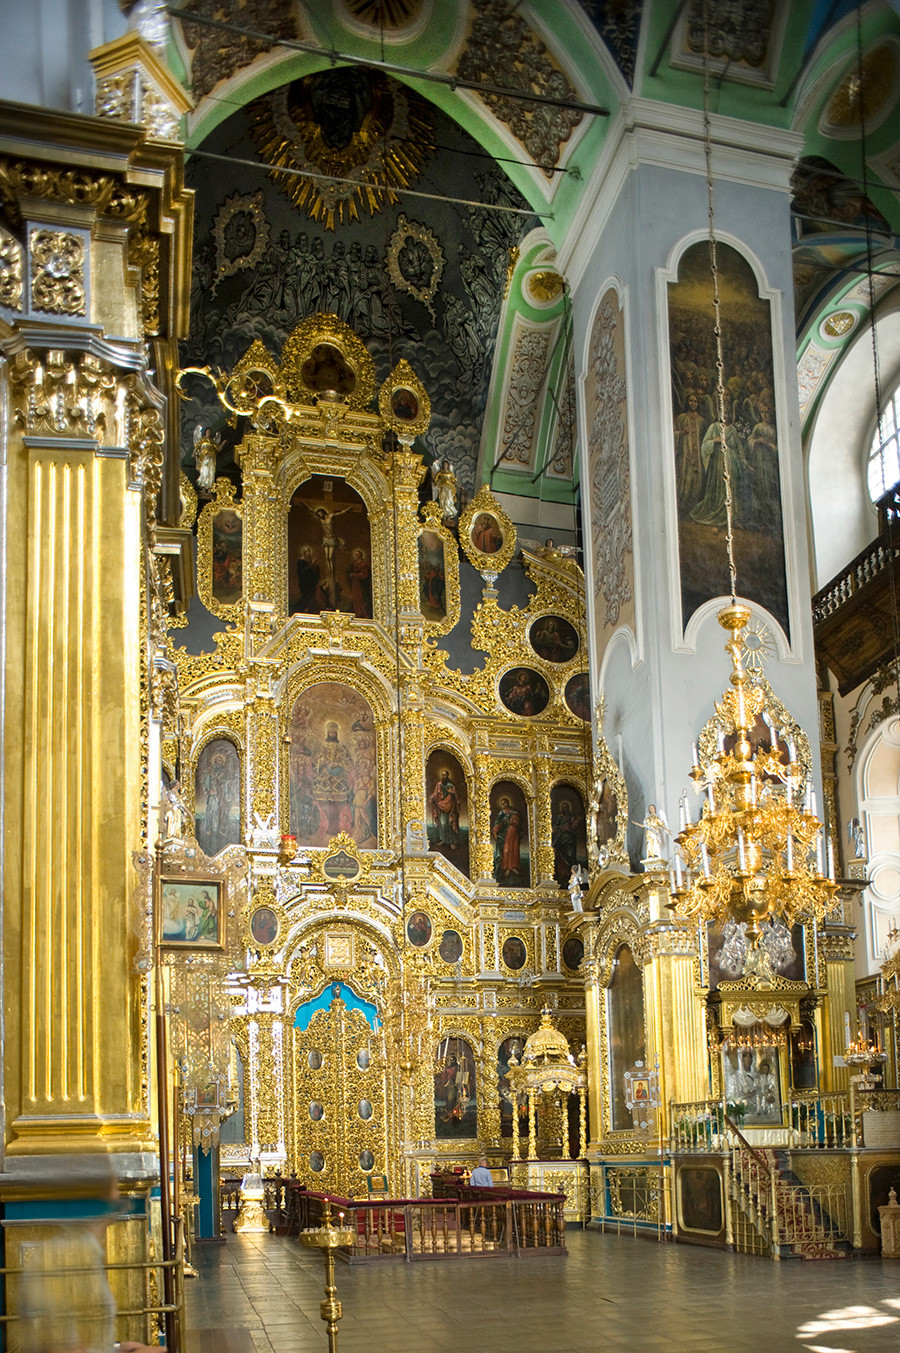 Smolensk. Dormition Cathedral, view of icon screen & baldachin with copy of Smolensk Icon. July 1, 2014